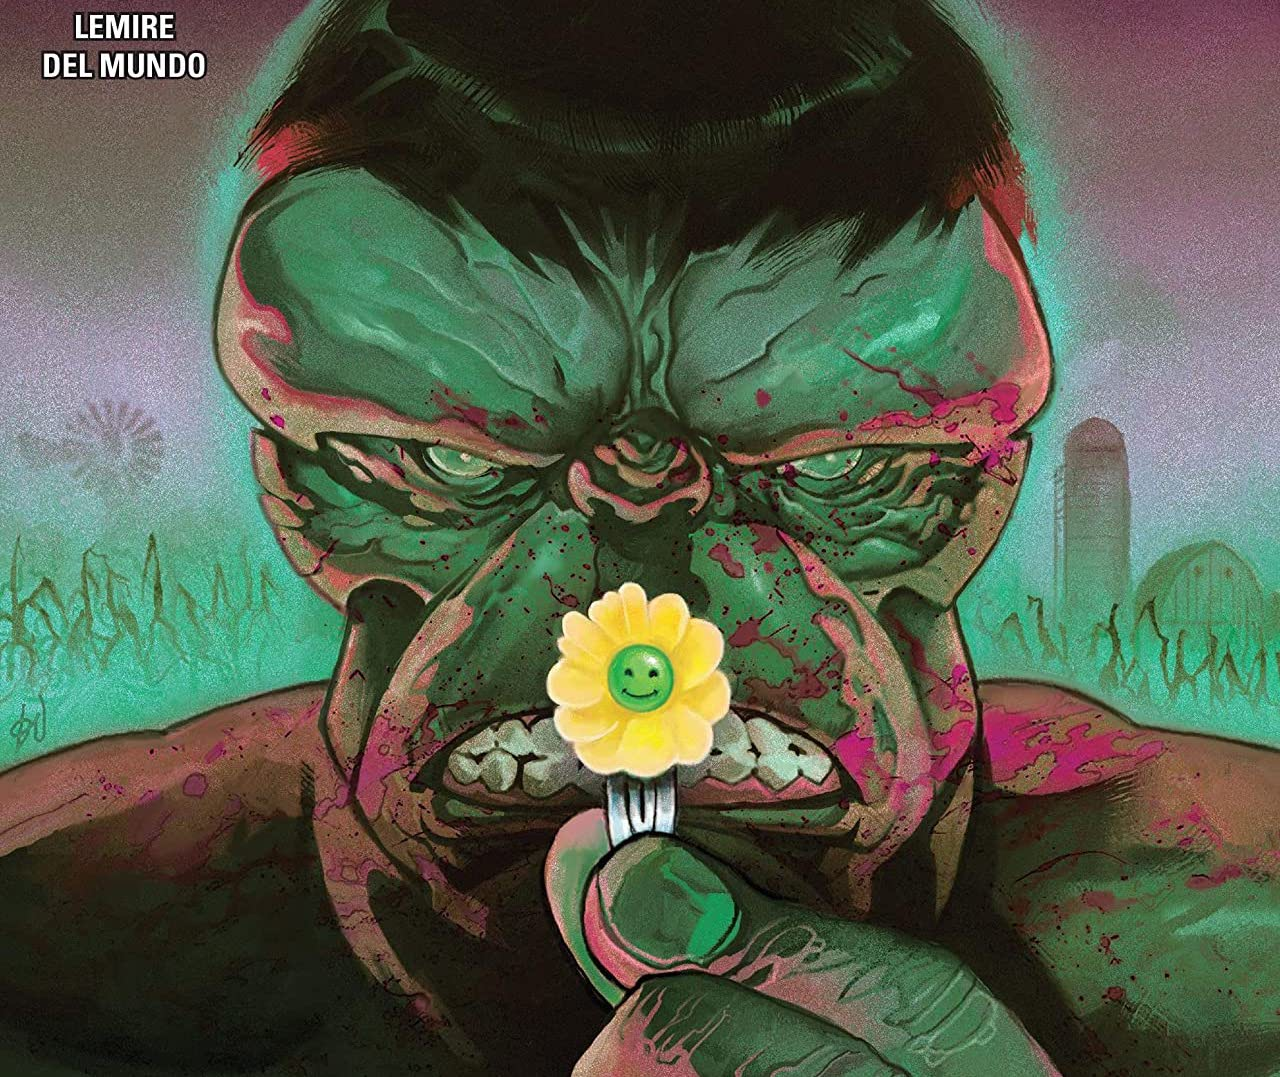 'The Immortal Hulk: The Threshing Place' #1 review